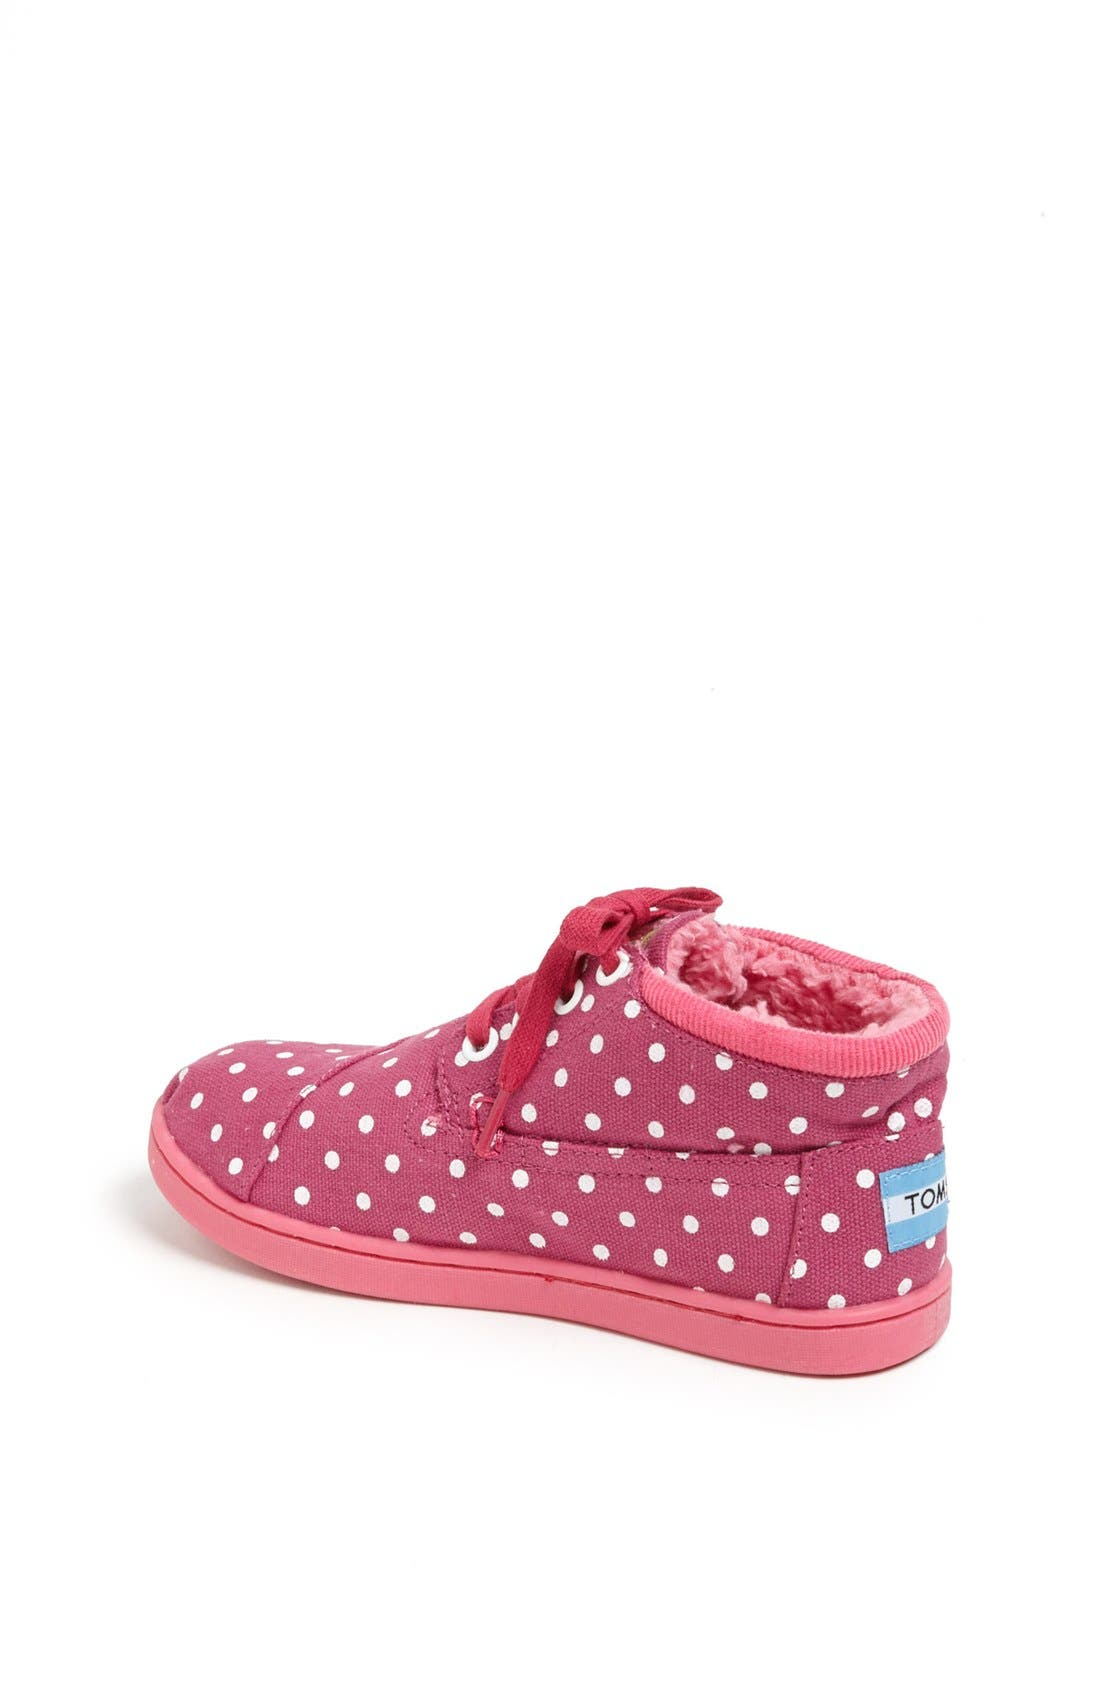 Alternate Image 2  - TOMS 'Botas - Youth' High Top Sneaker (Toddler, Little Kid & Big Kid)